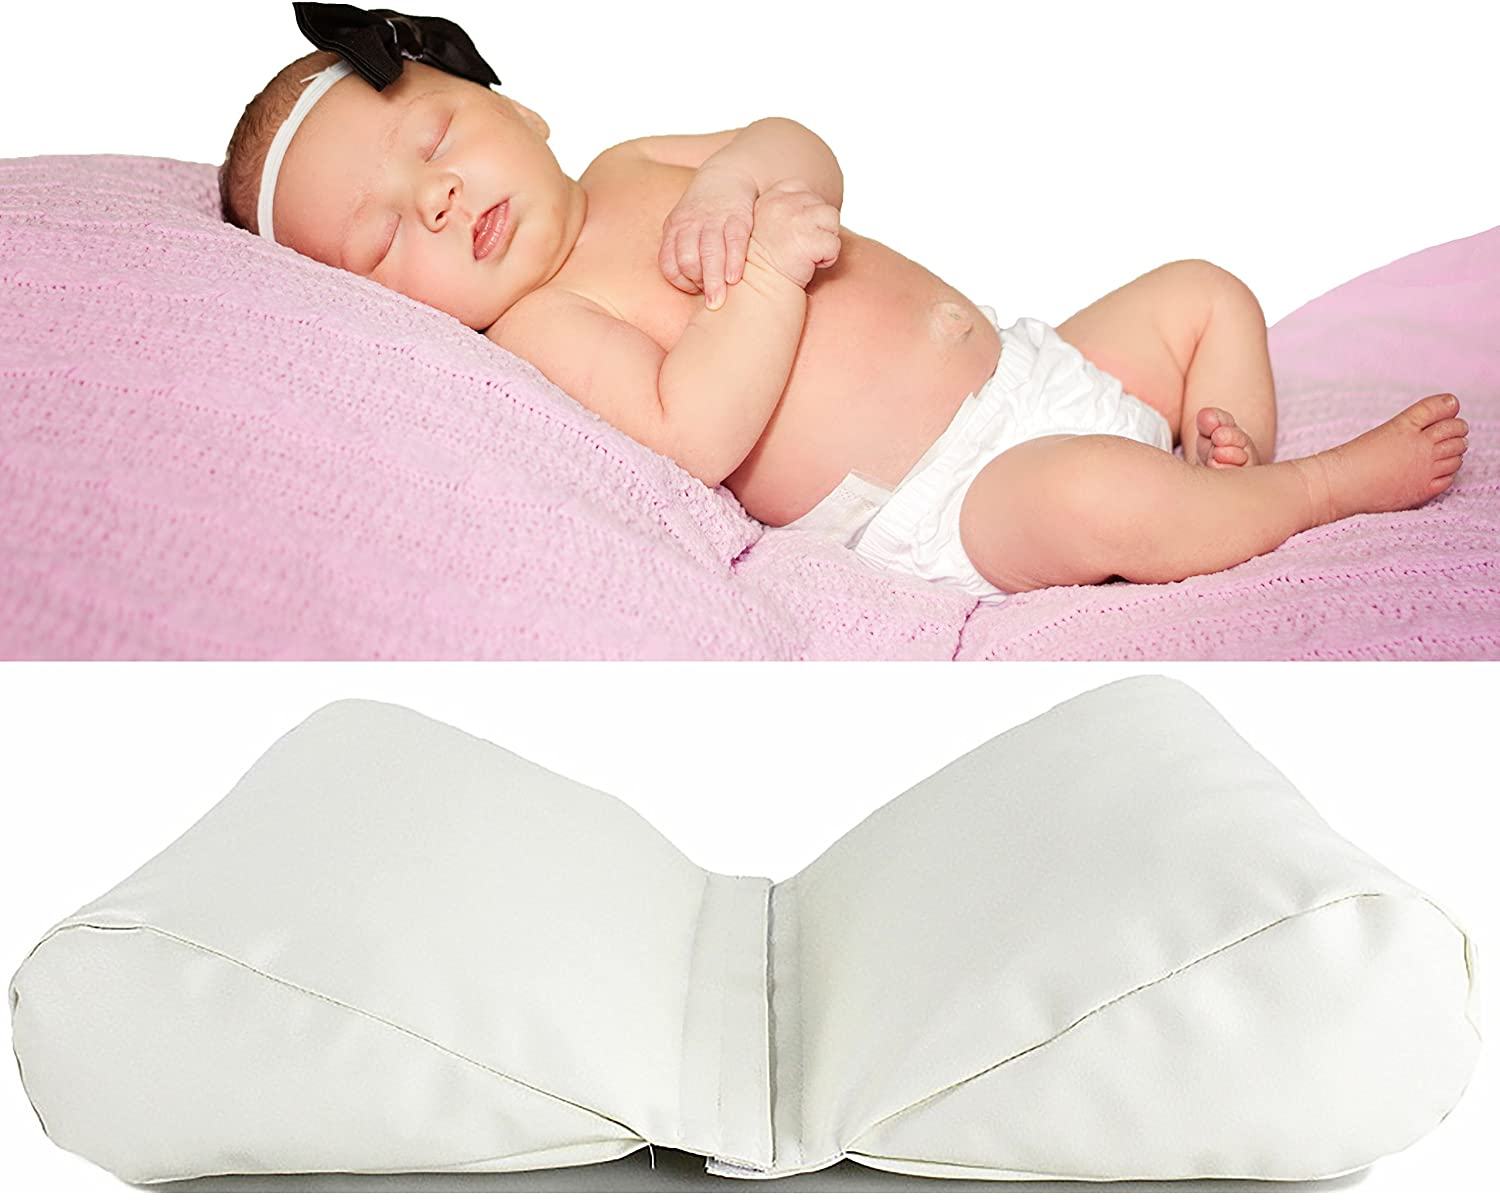 BABY CC Newborn Photography Butterfly Pillow - 2 Set Posing Props for Infant Boy and Girl Photoshoot - Wedges to Support Position - Ebook with Photo Shoot Tips Shaoxing Jinlong Textile Co